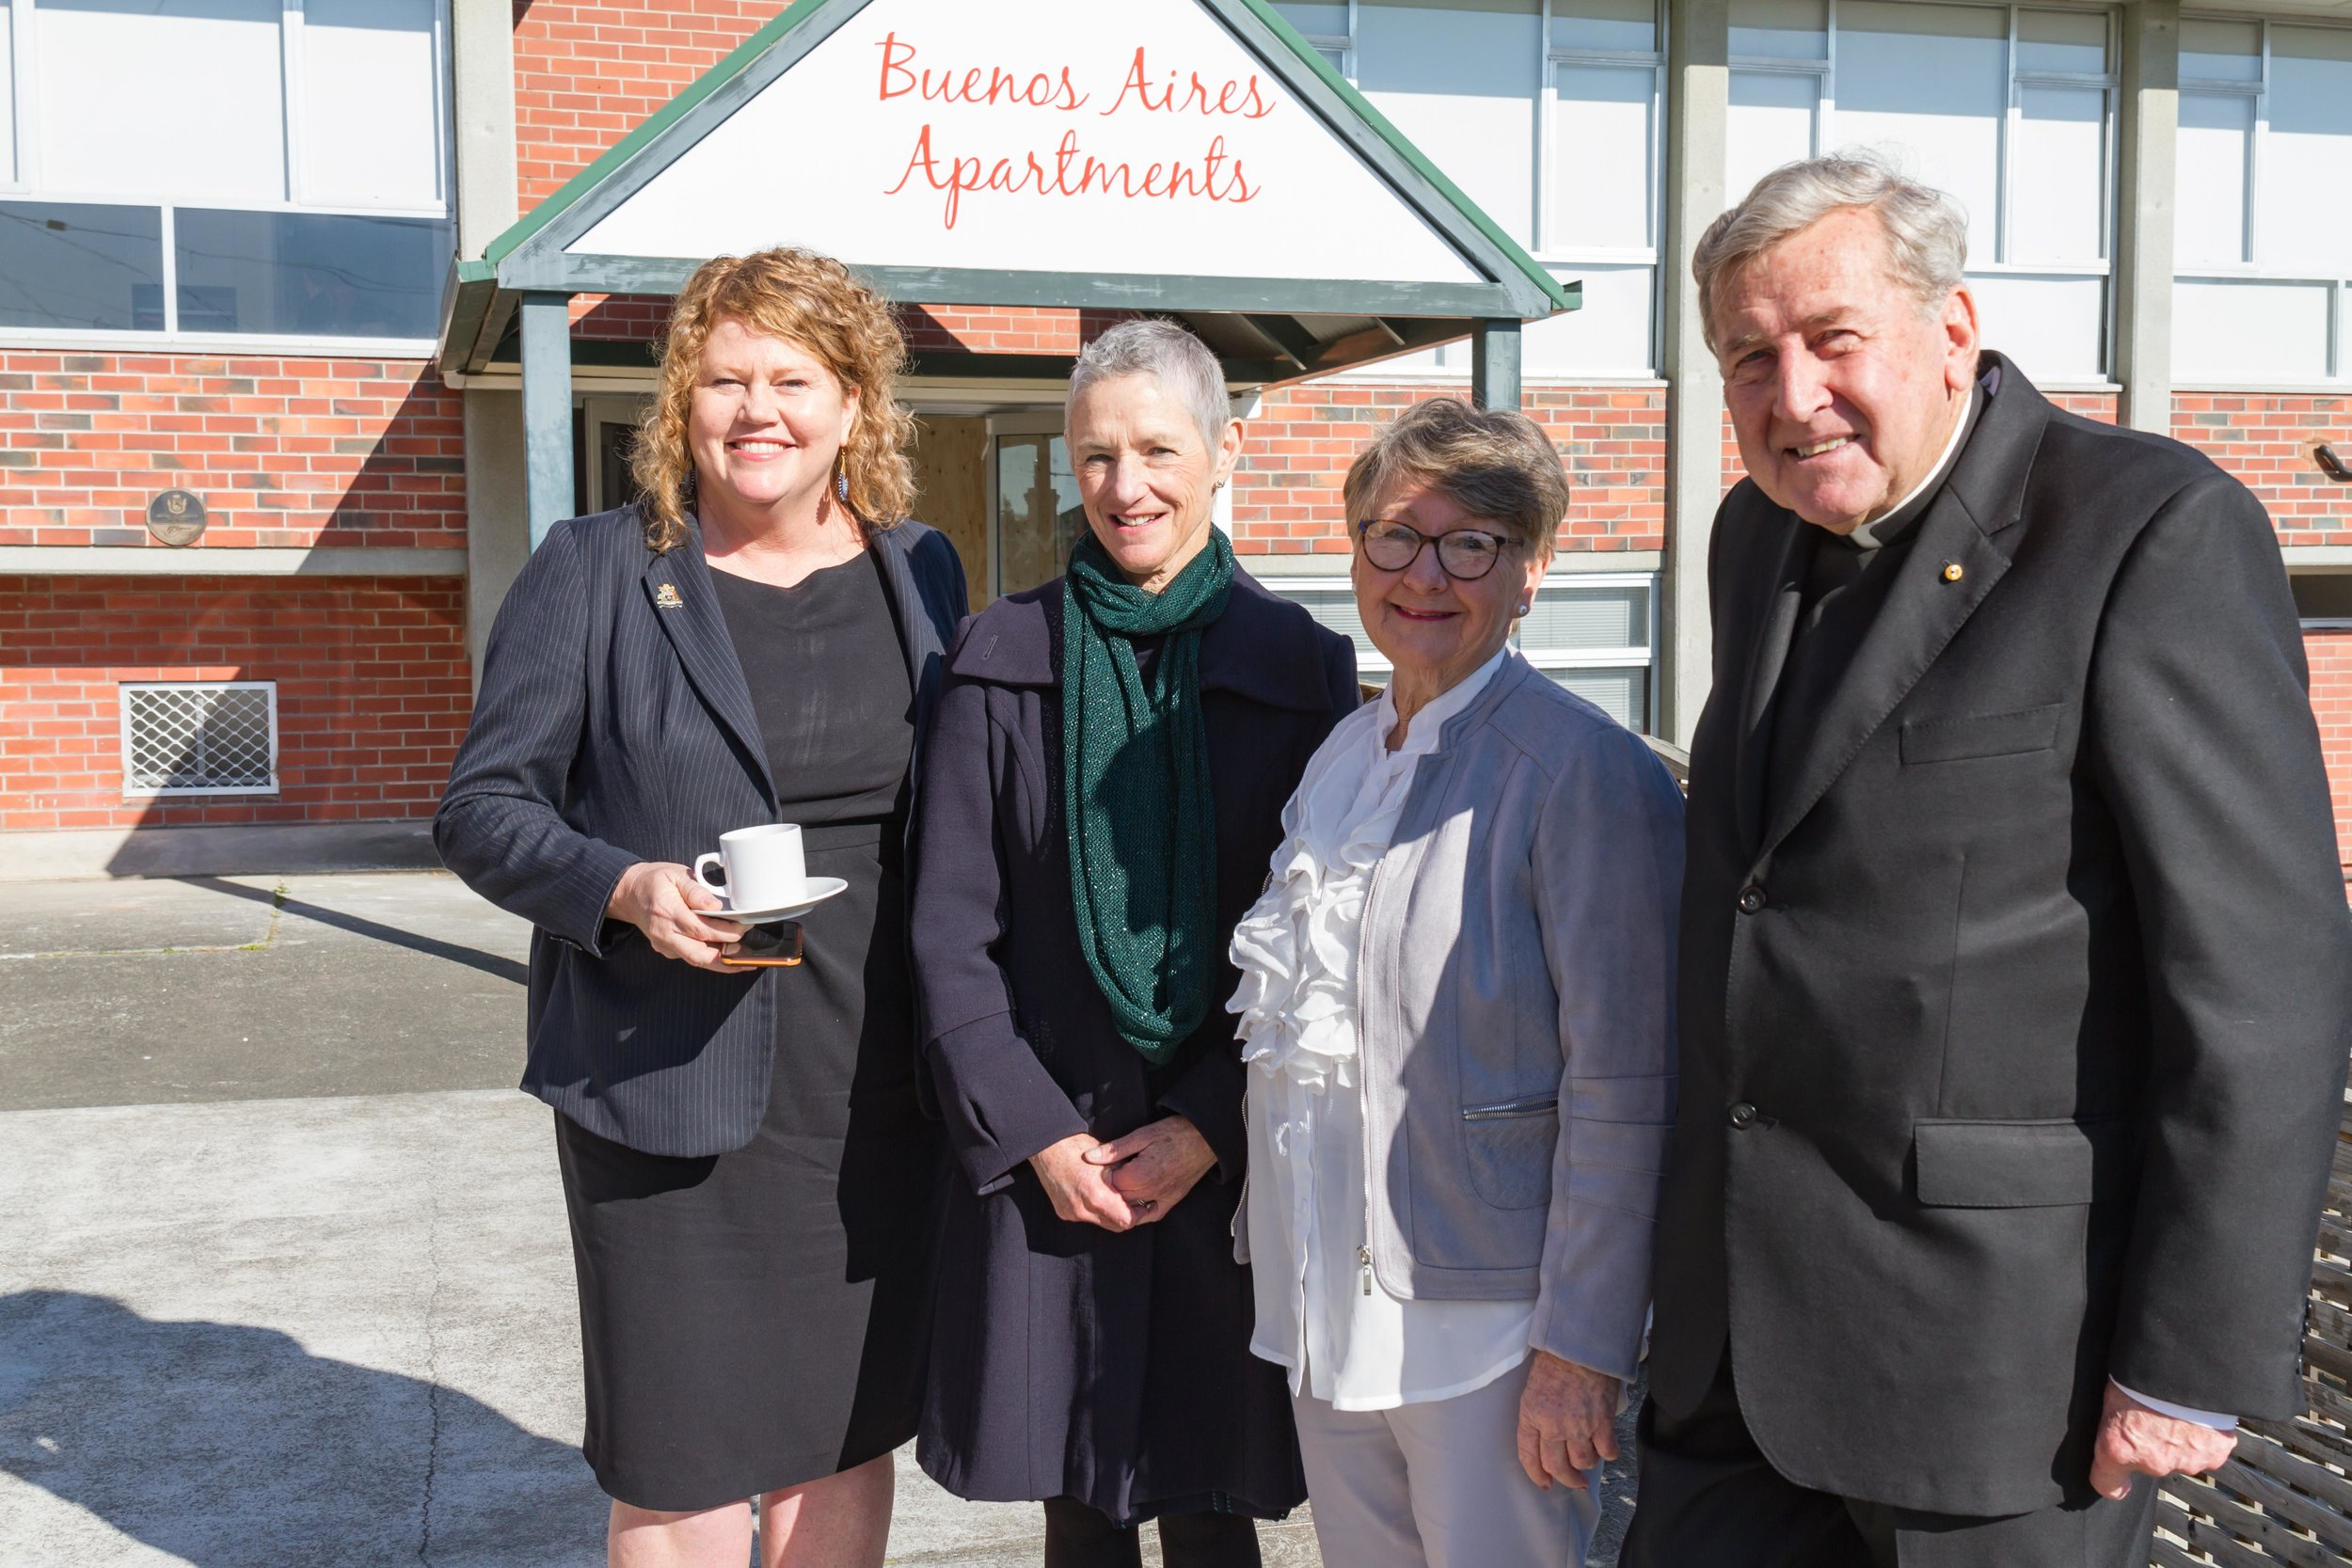 Lord Mayor Councillor Anna Reynolds, Her Excellency Kate Warner Governor of Tasmania, apartment resident Mrs Kay Dolman and South Hobart Parish Priest Fr Michael Tate. Photo Credit: Mark Franklin